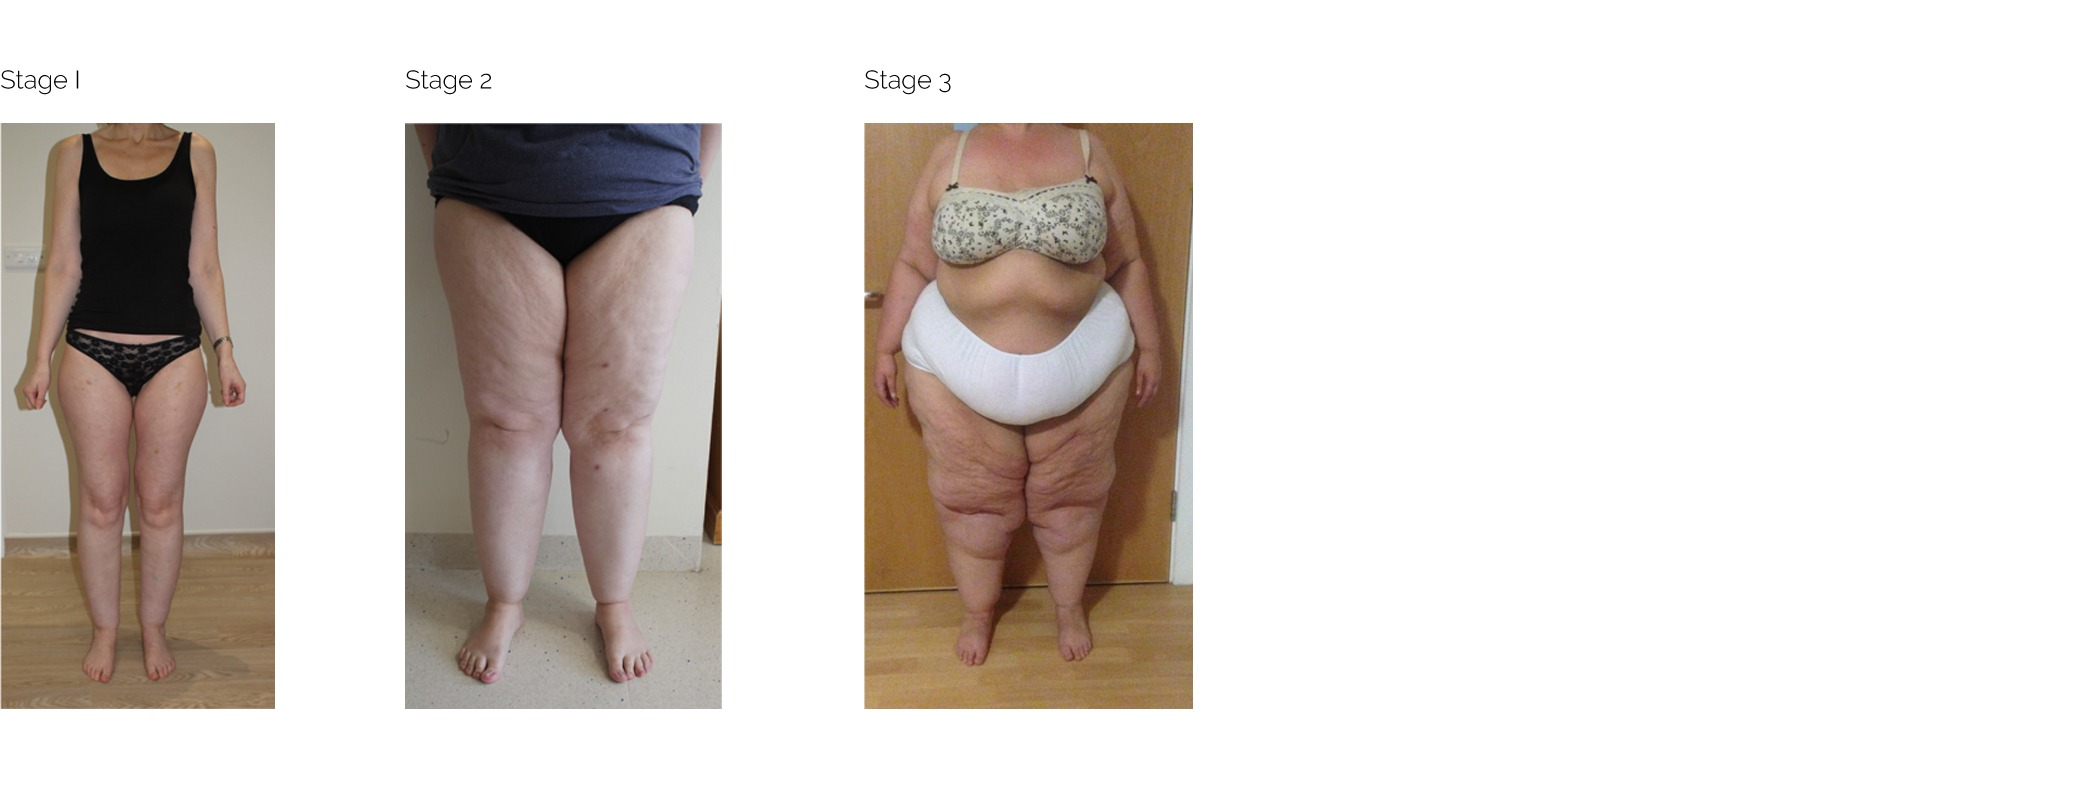 Lipoedema-Stages